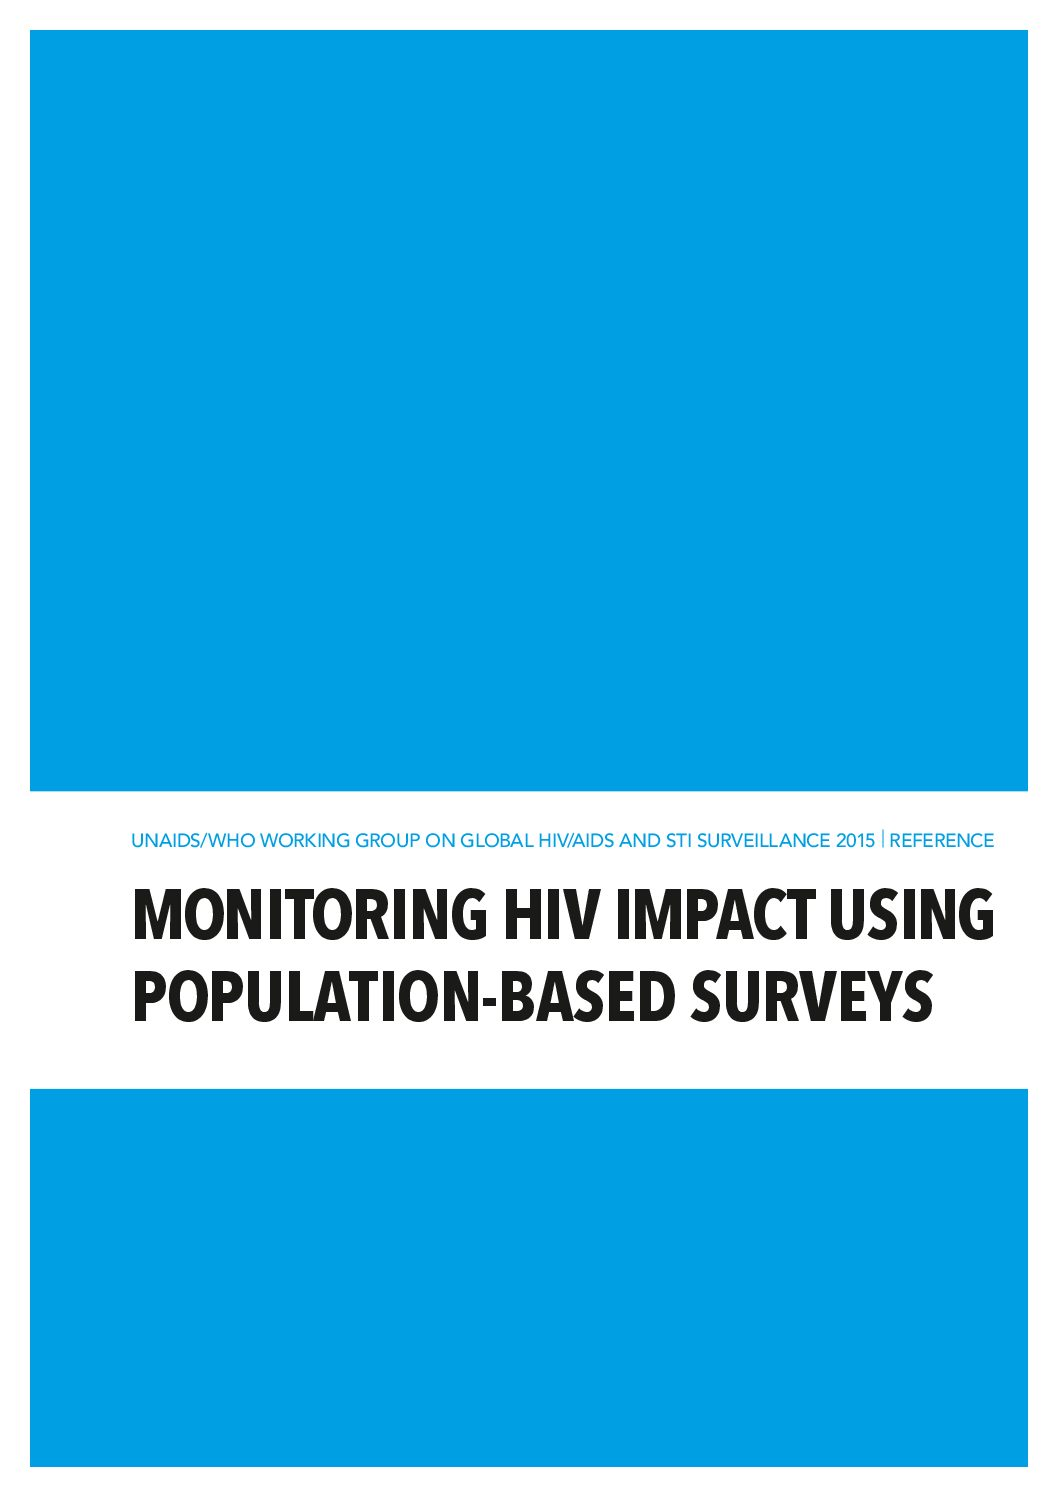 Monitoring HIV impact using population-based surveys.